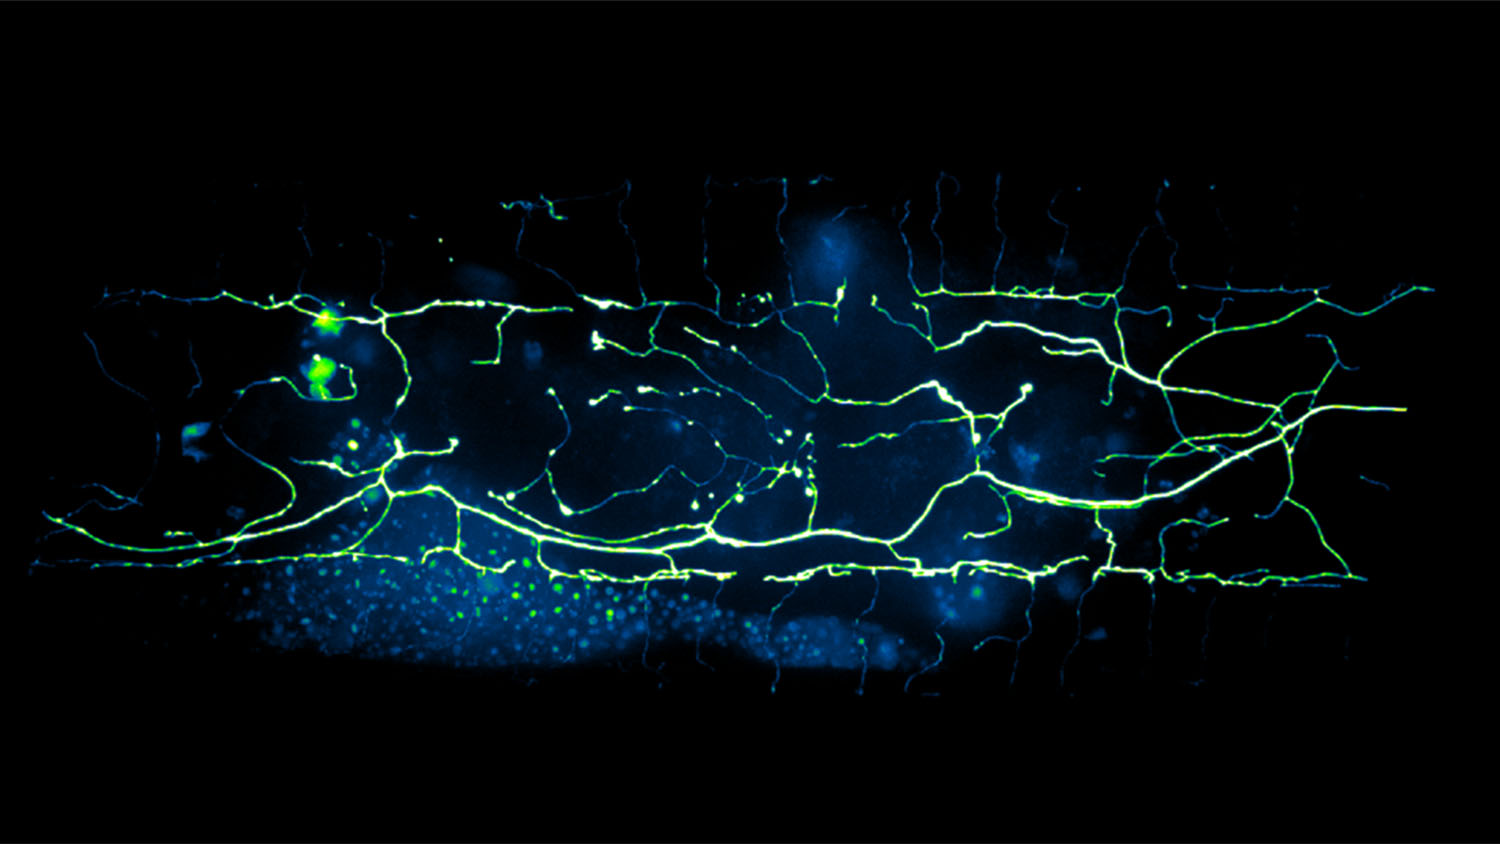 neon map of a neuron in C. elegans a